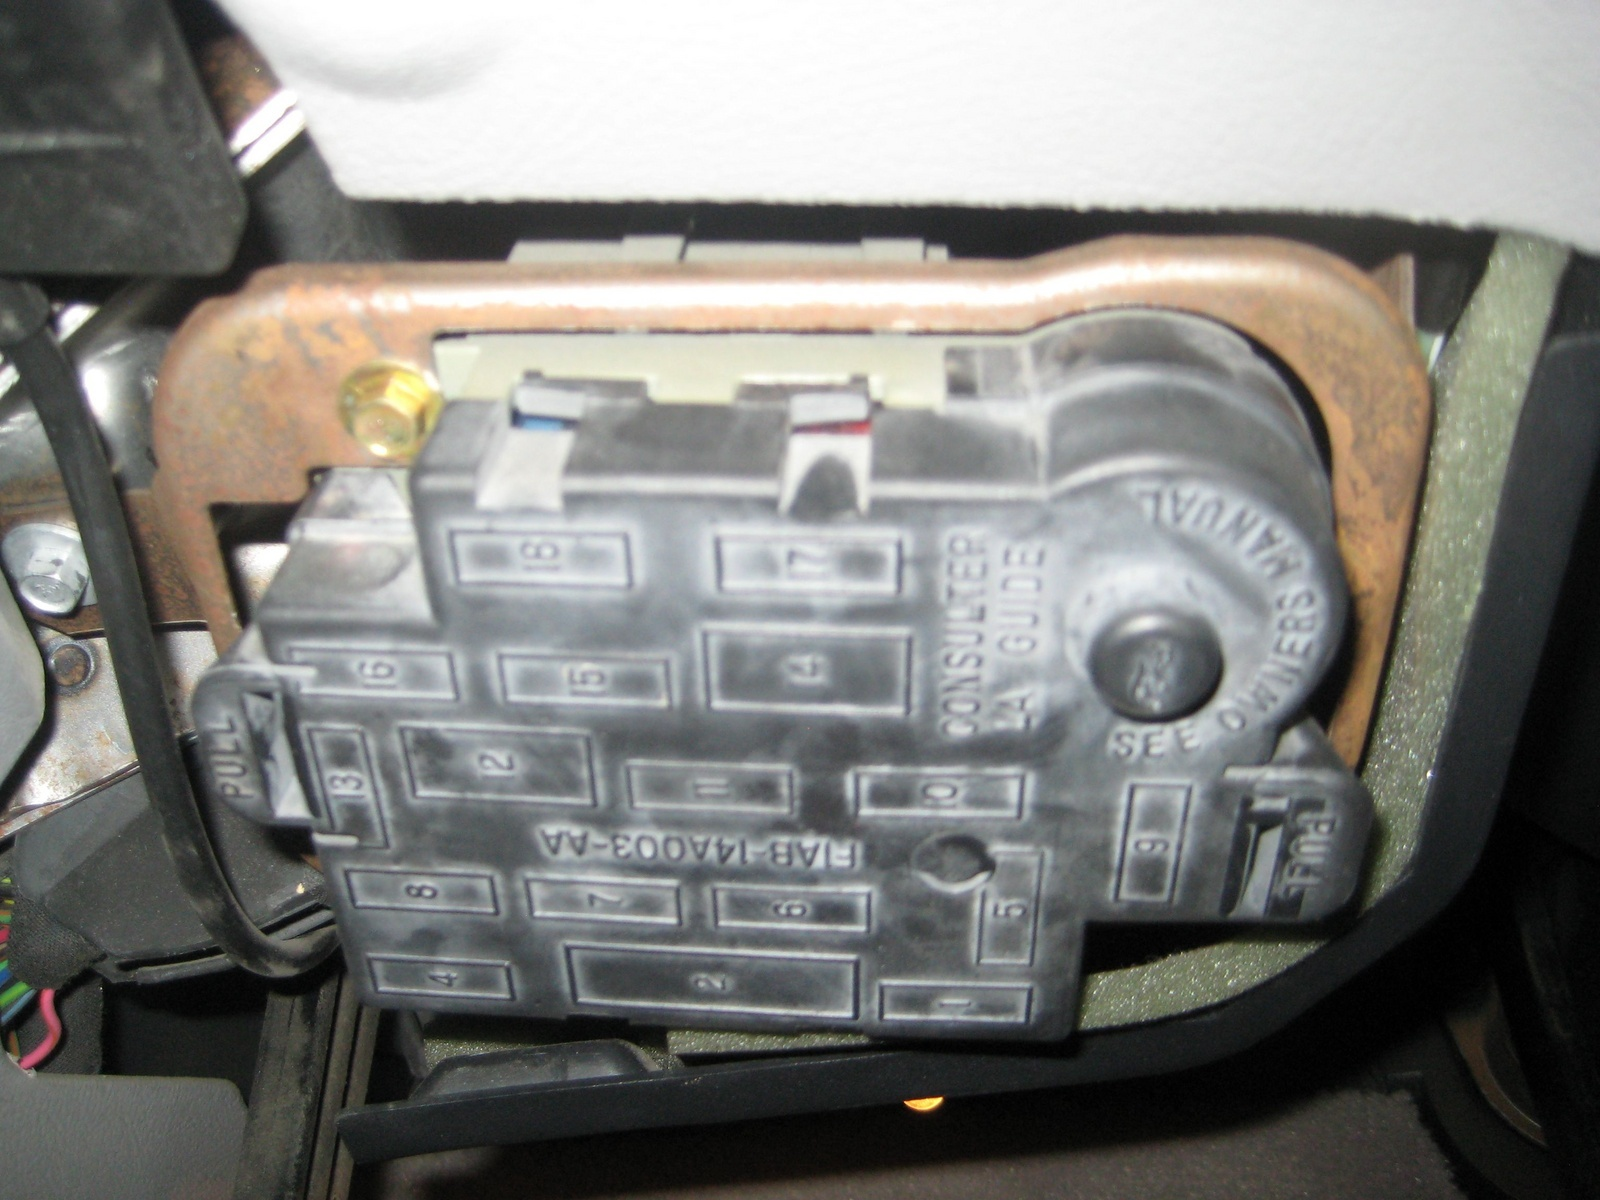 Honda Civic Fuse Box Diagram Moreover 1997 Honda Civic Wiring Diagram